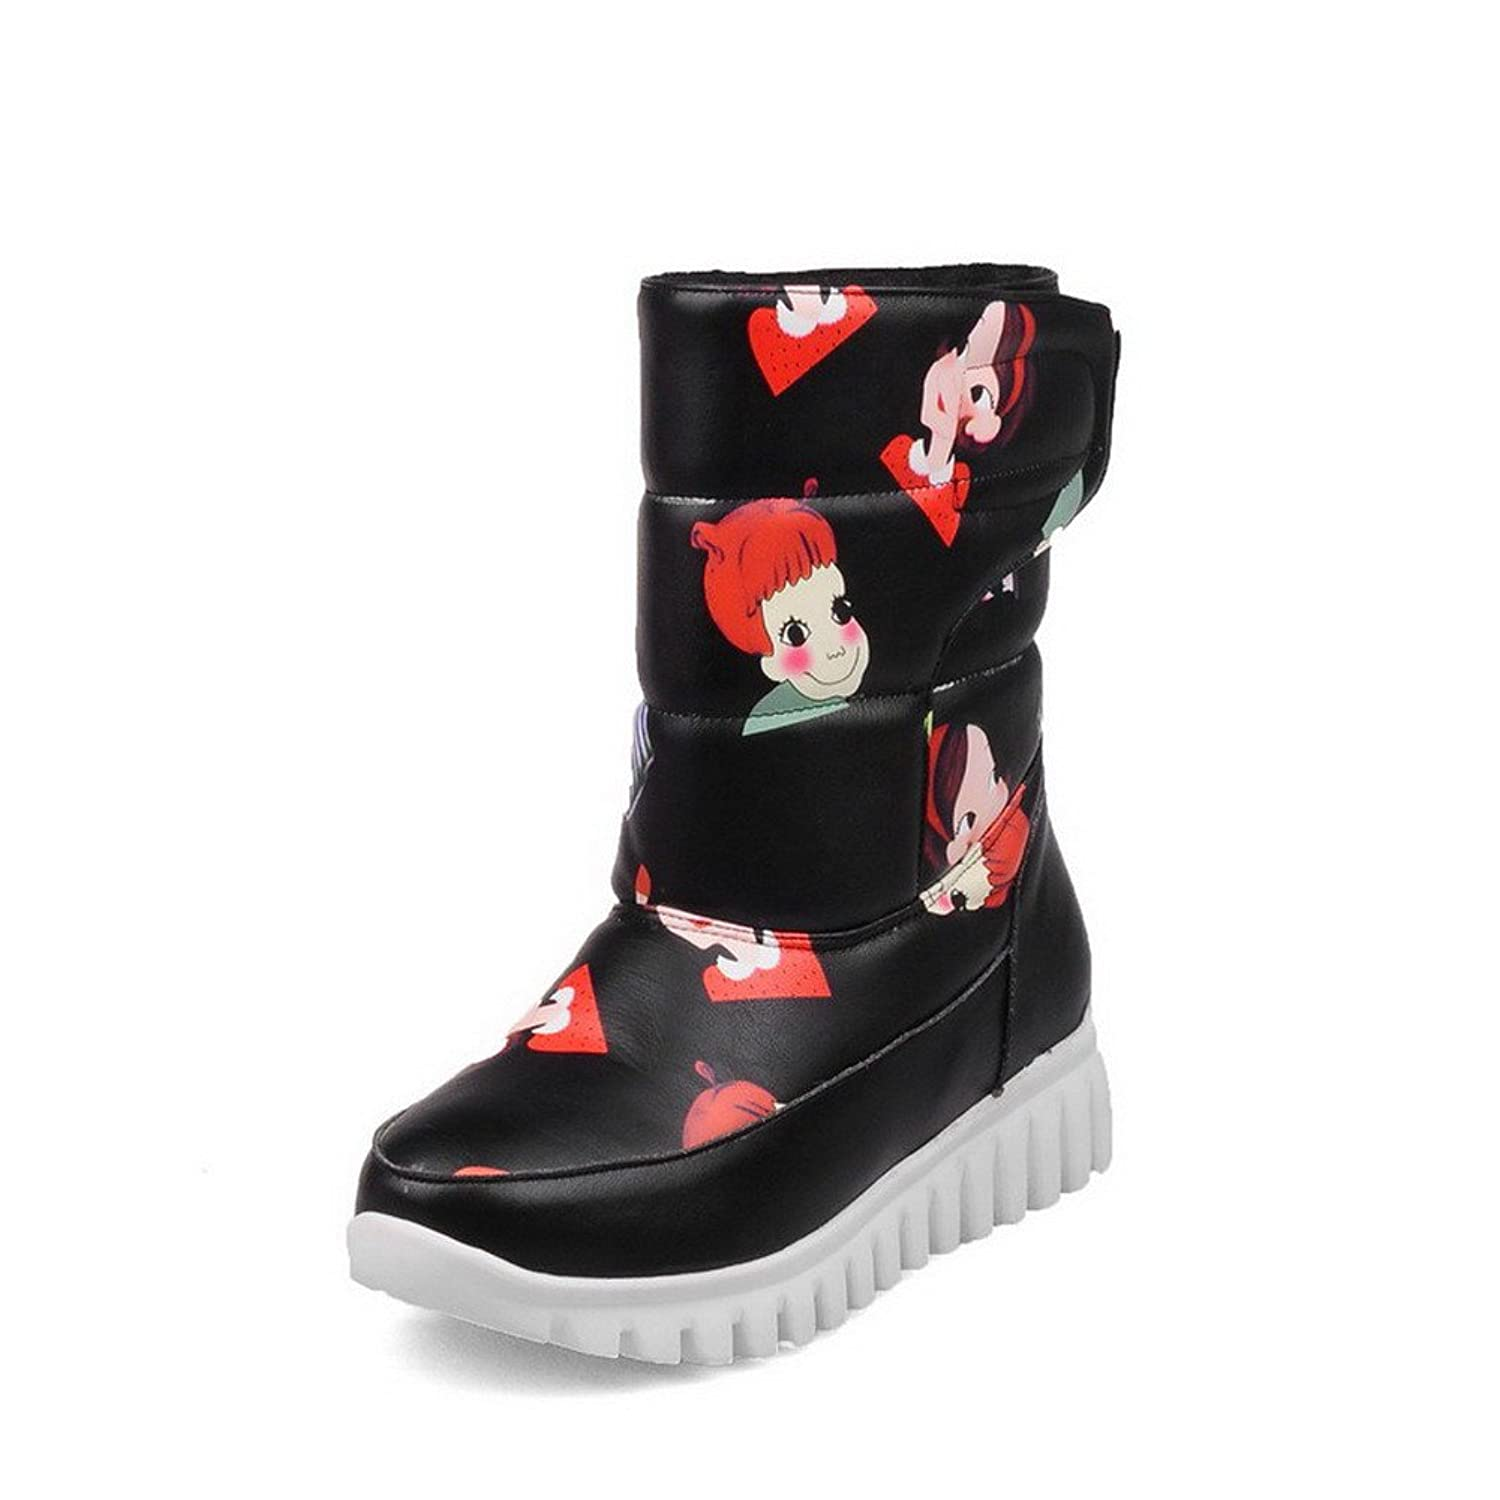 WeiPoot Women's Round Closed Toe Low-Heels Soft Material Low-top Cartoon Pattern Boots